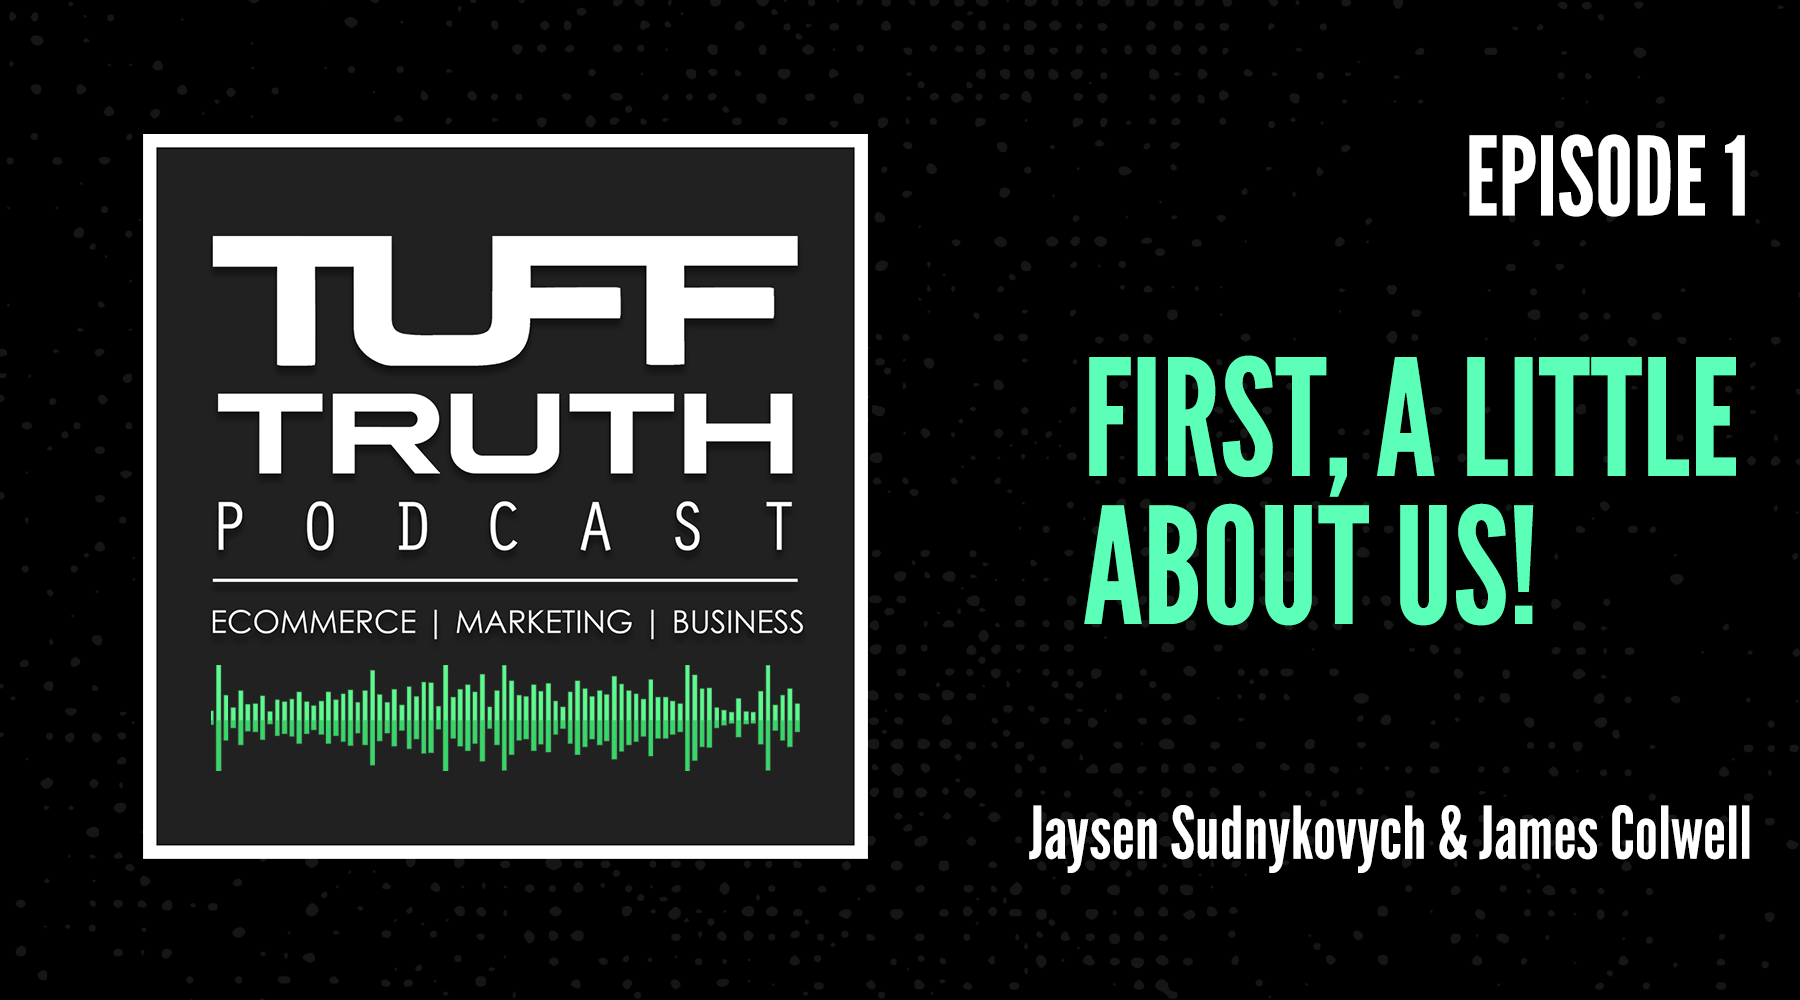 Episode 1: First, a little about us - The TUFF Truth Podcast